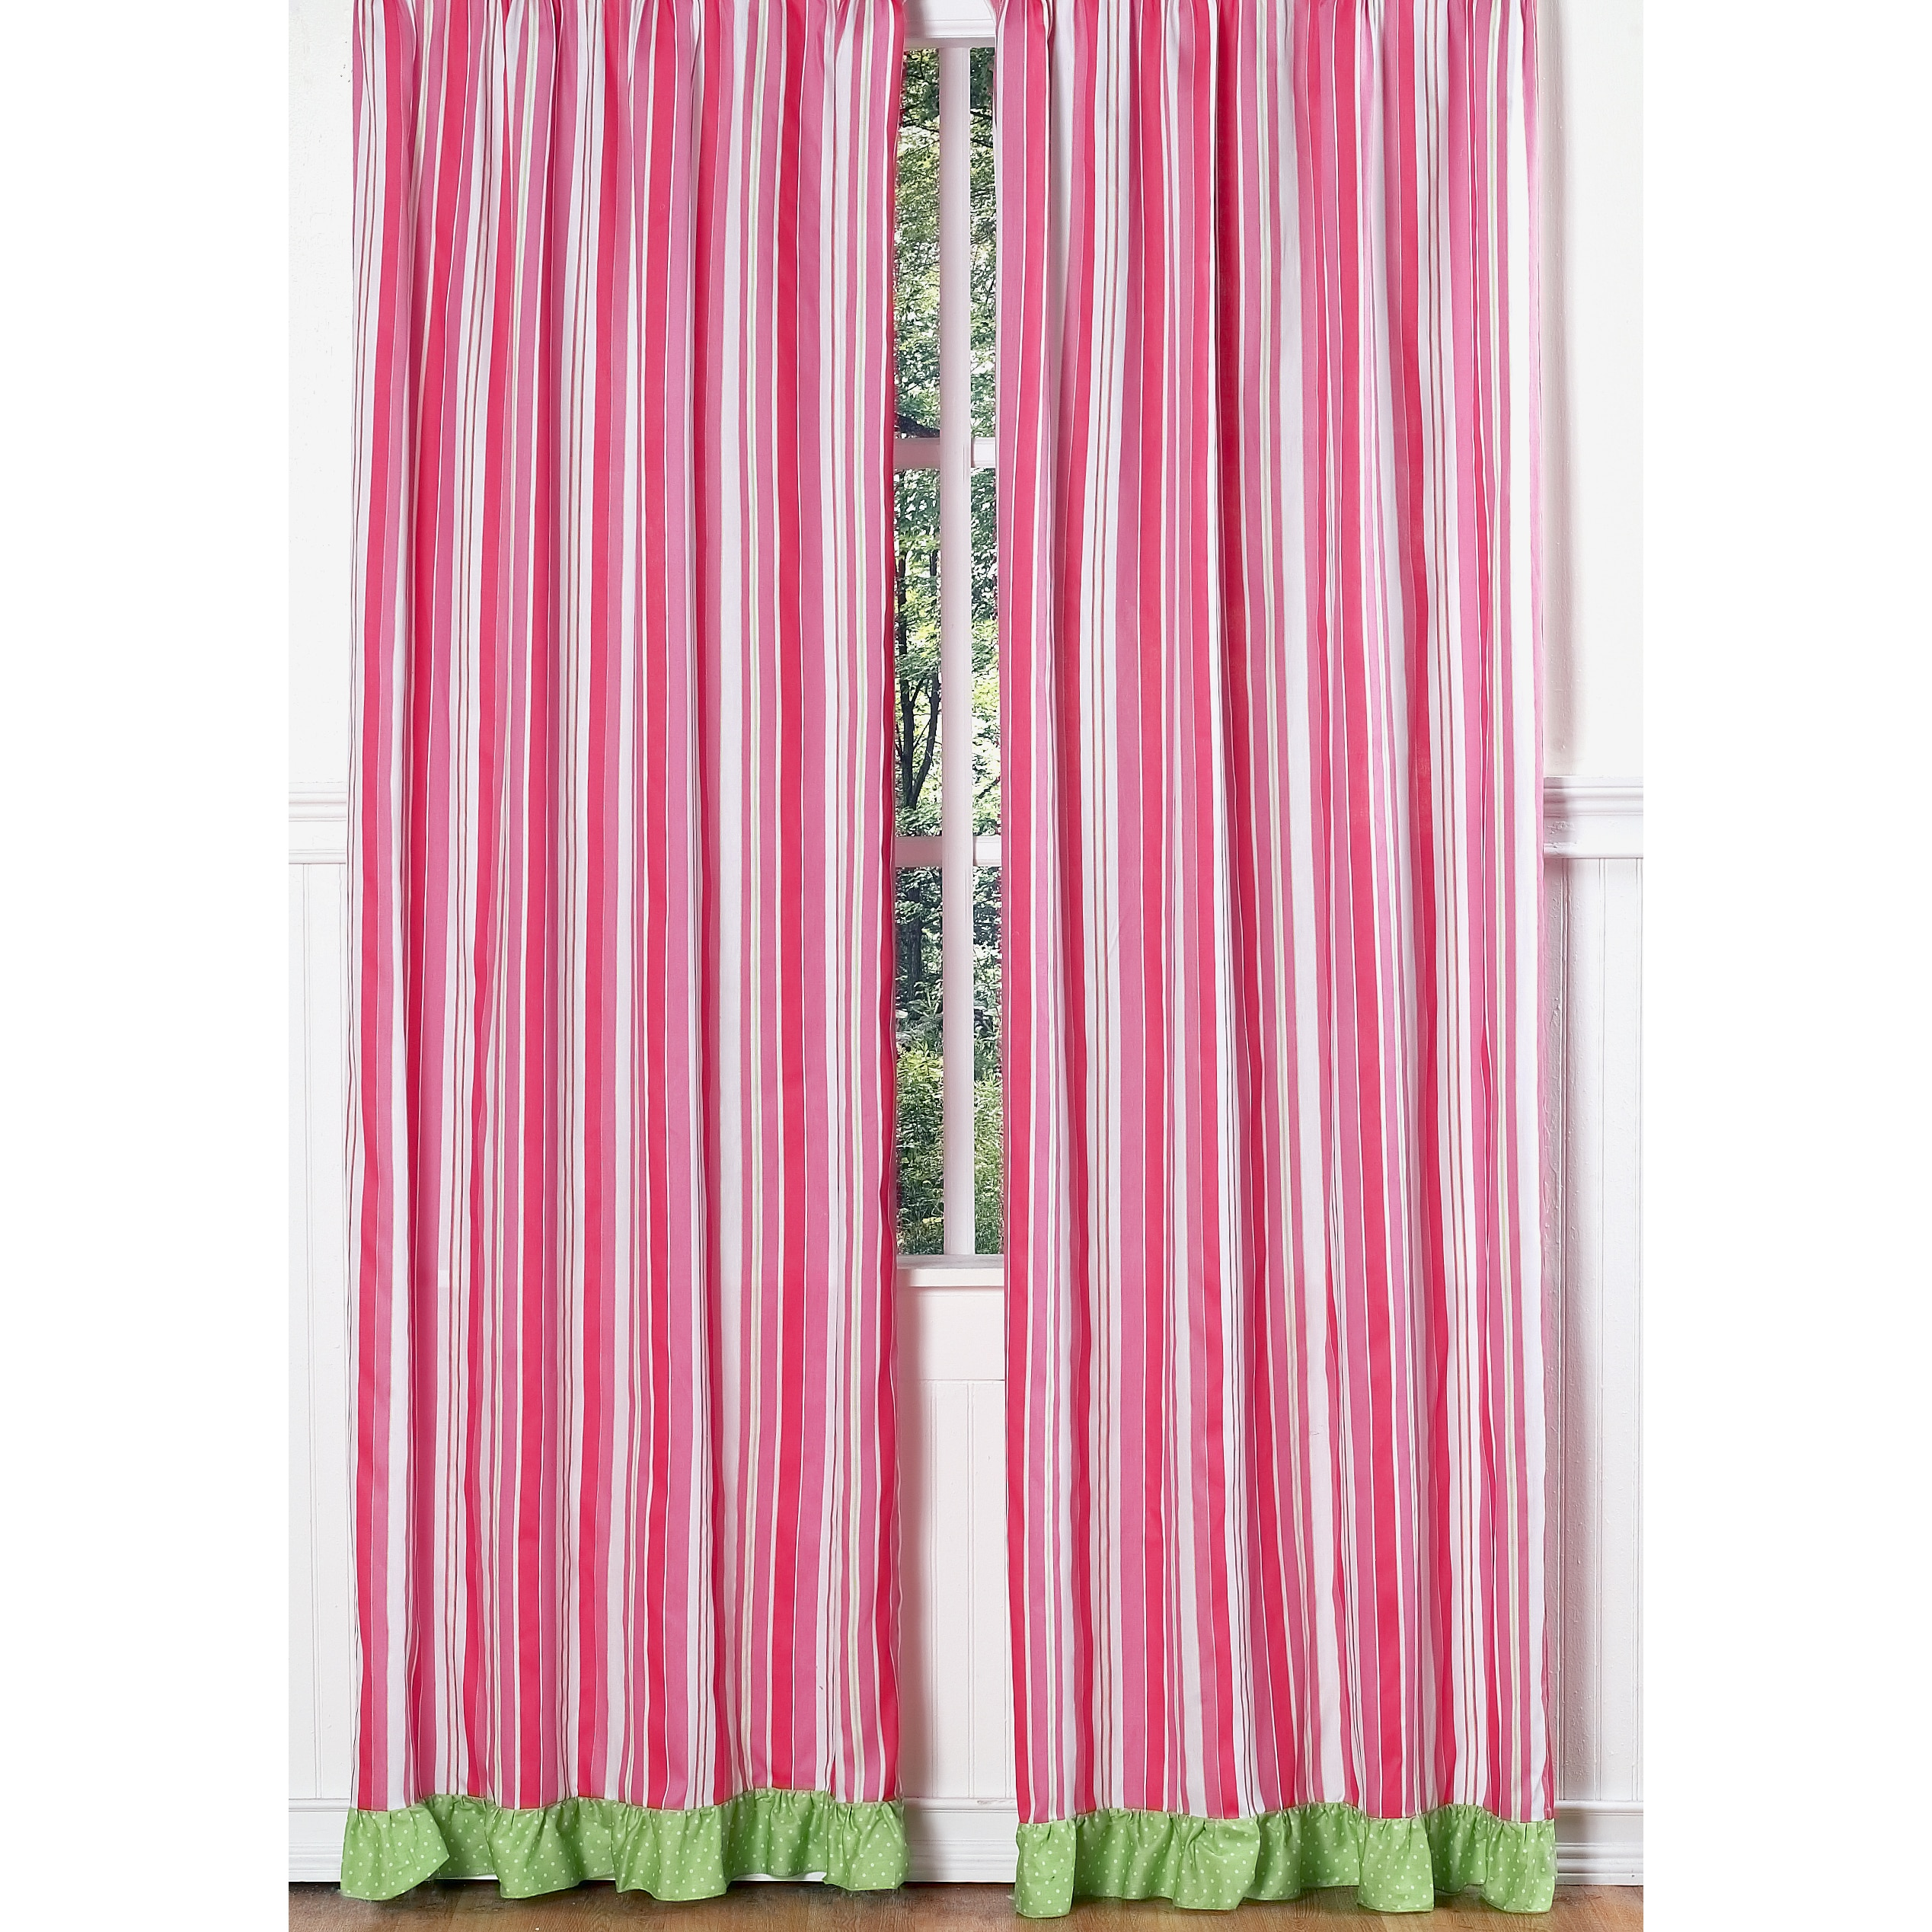 Sweet Jojo Designs Olivia Pink and Green Striped 84-inch Curtain Panel Pair at Sears.com